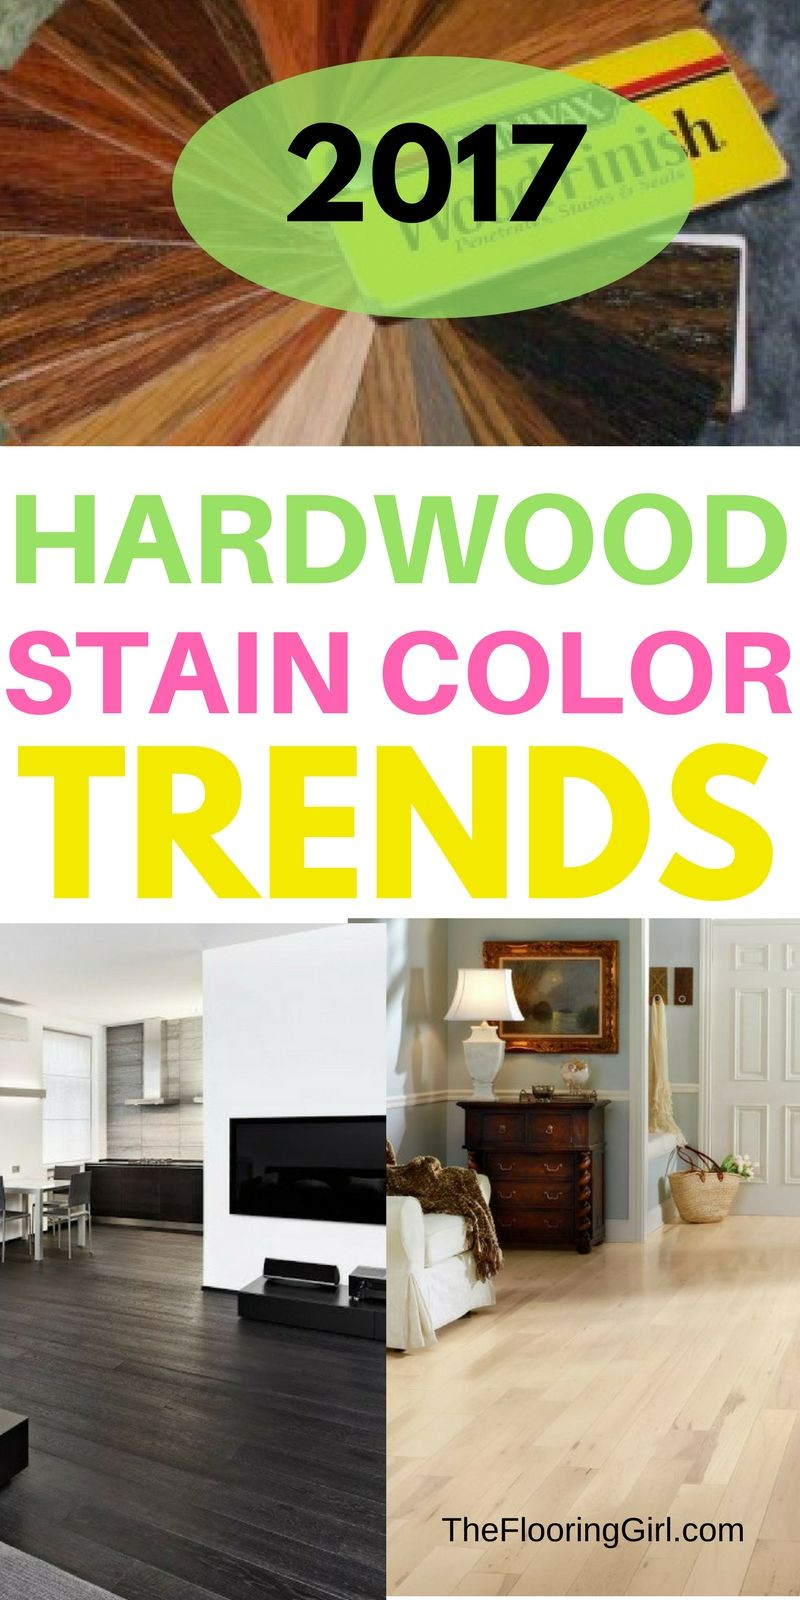 cleaning products for engineered hardwood floors of hardwood flooring stain color trends 2018 more from the flooring pertaining to hardwood flooring stain color trends for 2017 hardwood colors that are in style theflooringgirl com